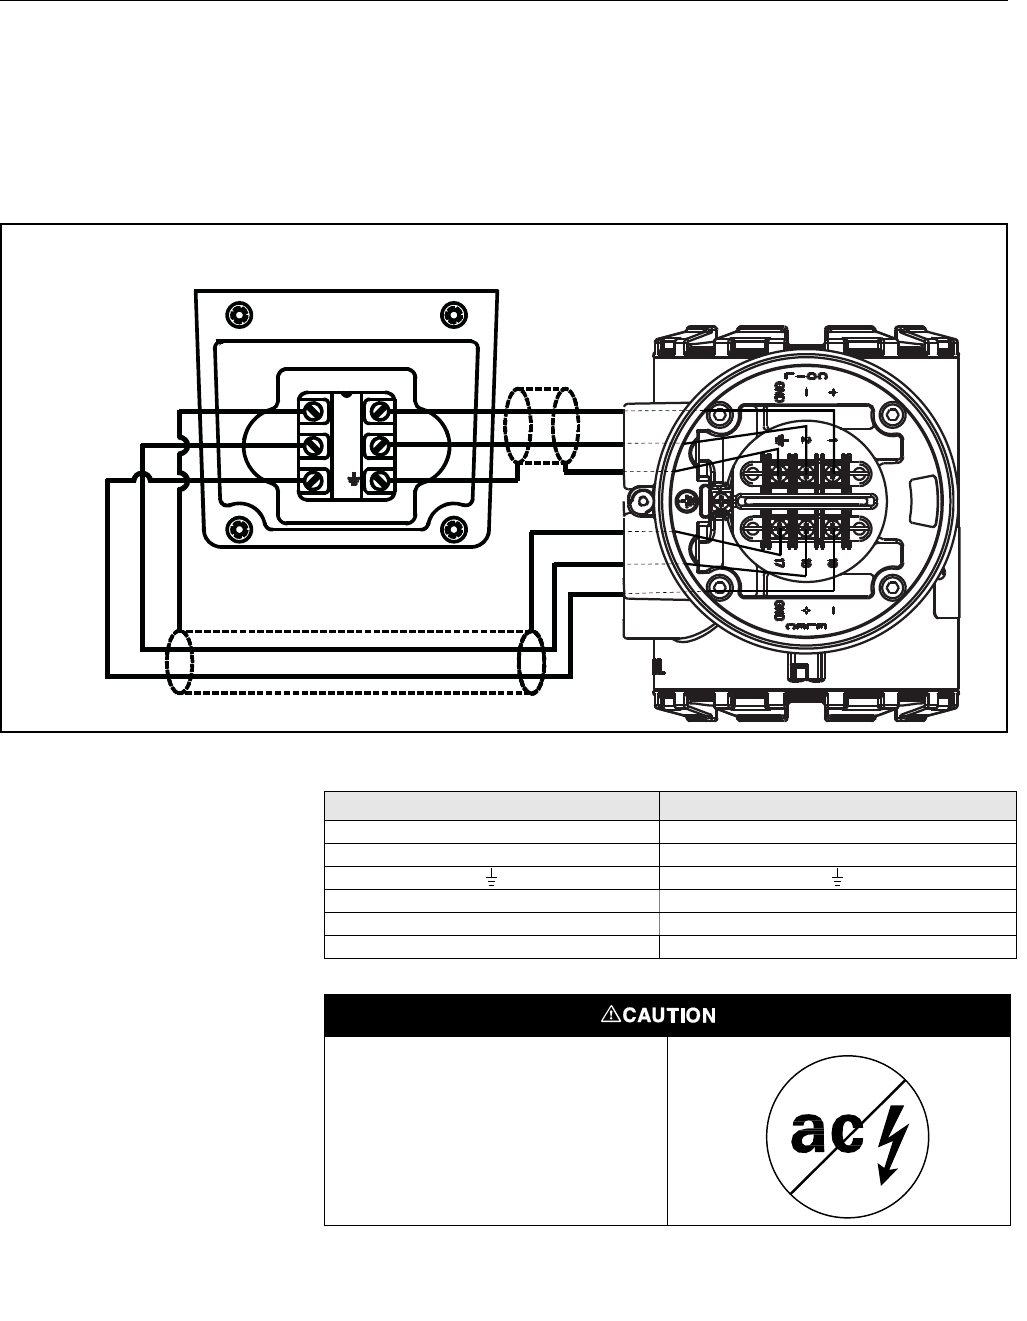 4cb8a751 c526 465f 9493 713bf7e156ff bg82 page 130 of emerson oxygen equipment rosemount 8732 user guide rosemount 8732 wiring diagram at n-0.co